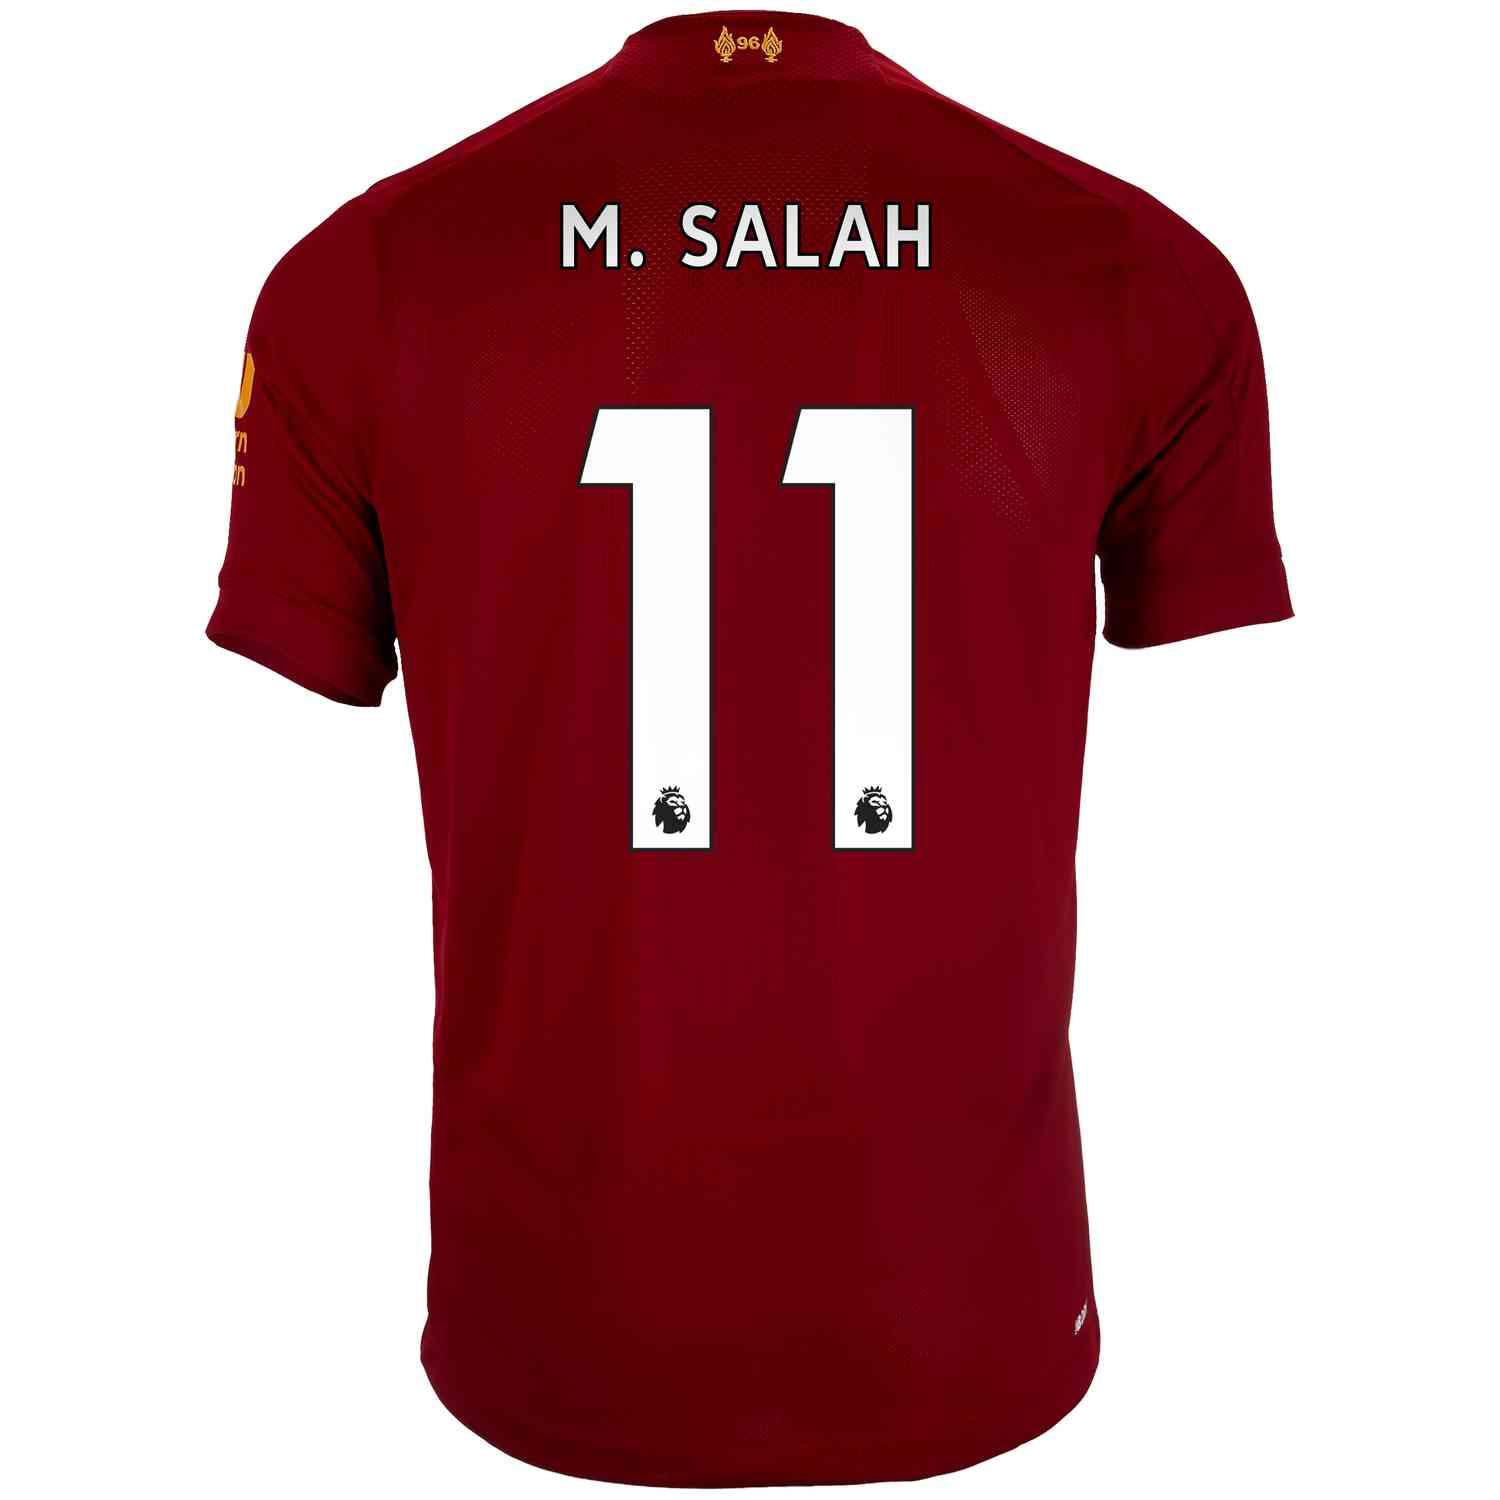 new product 1979c 3bc84 2019/20 New Balance Mohamed Salah Liverpool Home Jersey ...